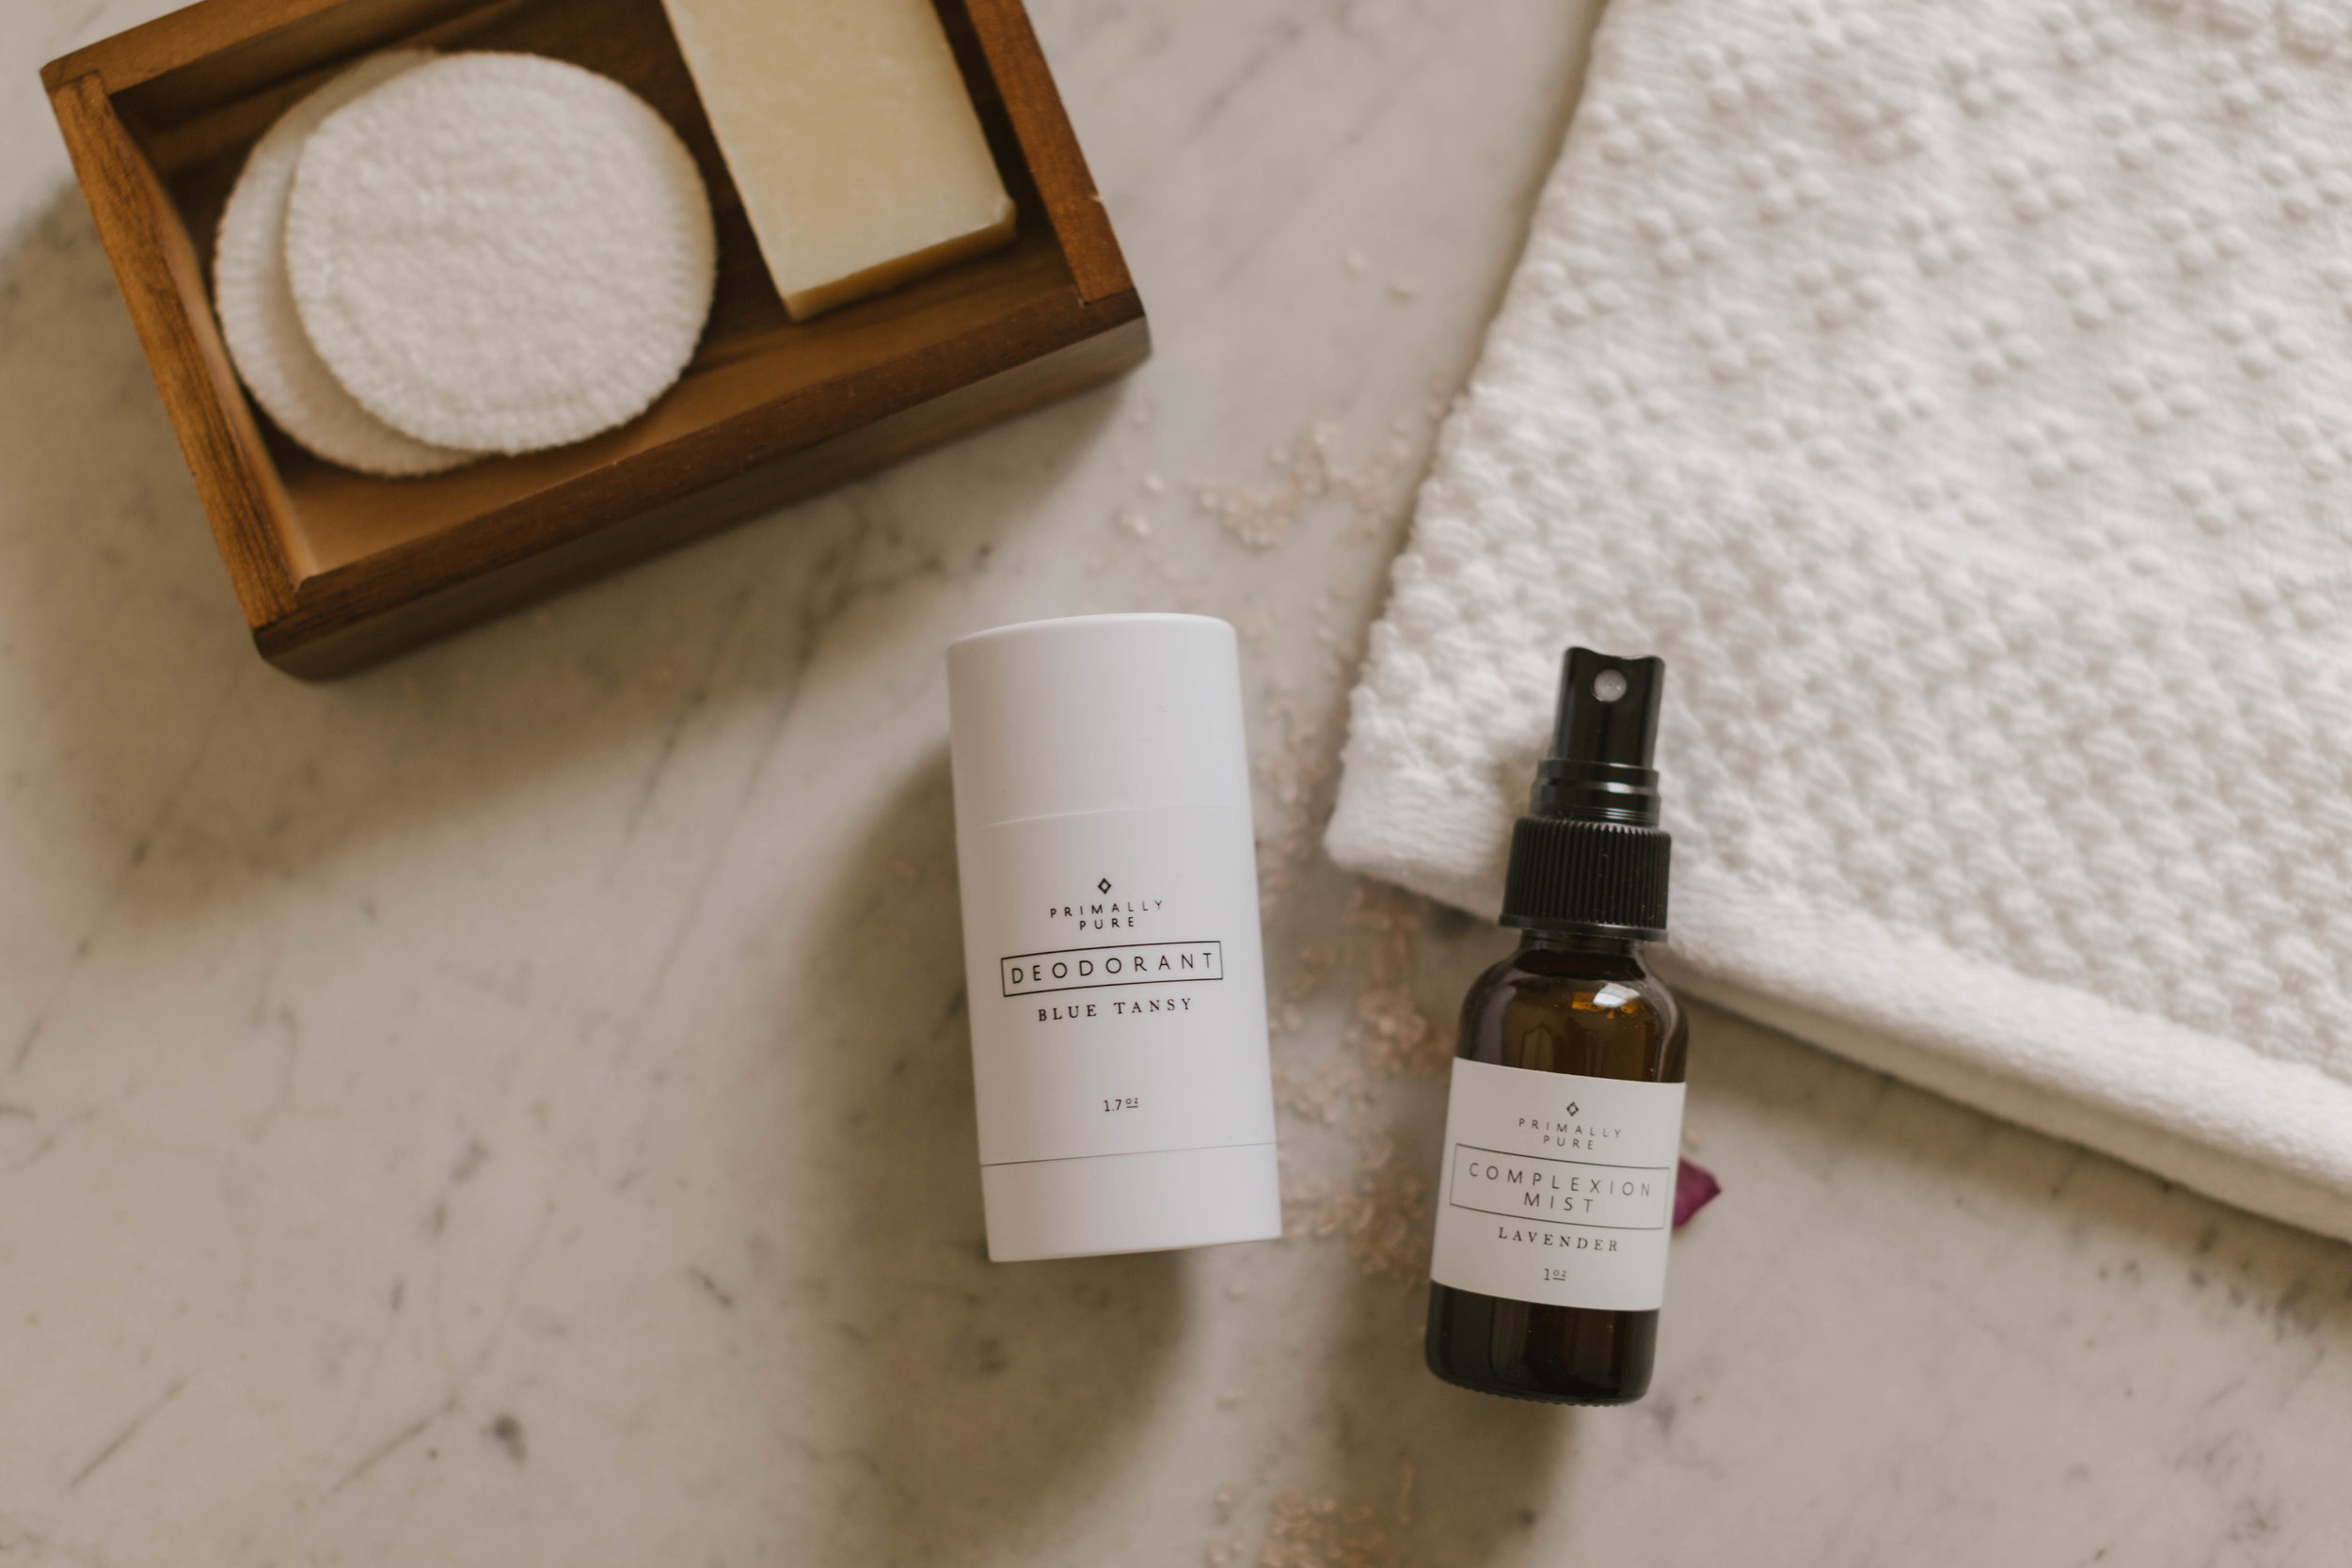 Primally Pure and fell in love! They are one of my absolute favorites when it comes to natural skincare, because their products are wonderful, the ingredients are so clean, and of course they smell incredible. Primally Pure is all about FEWER but BETTER ingredients, and creating products that promote health and wellness.